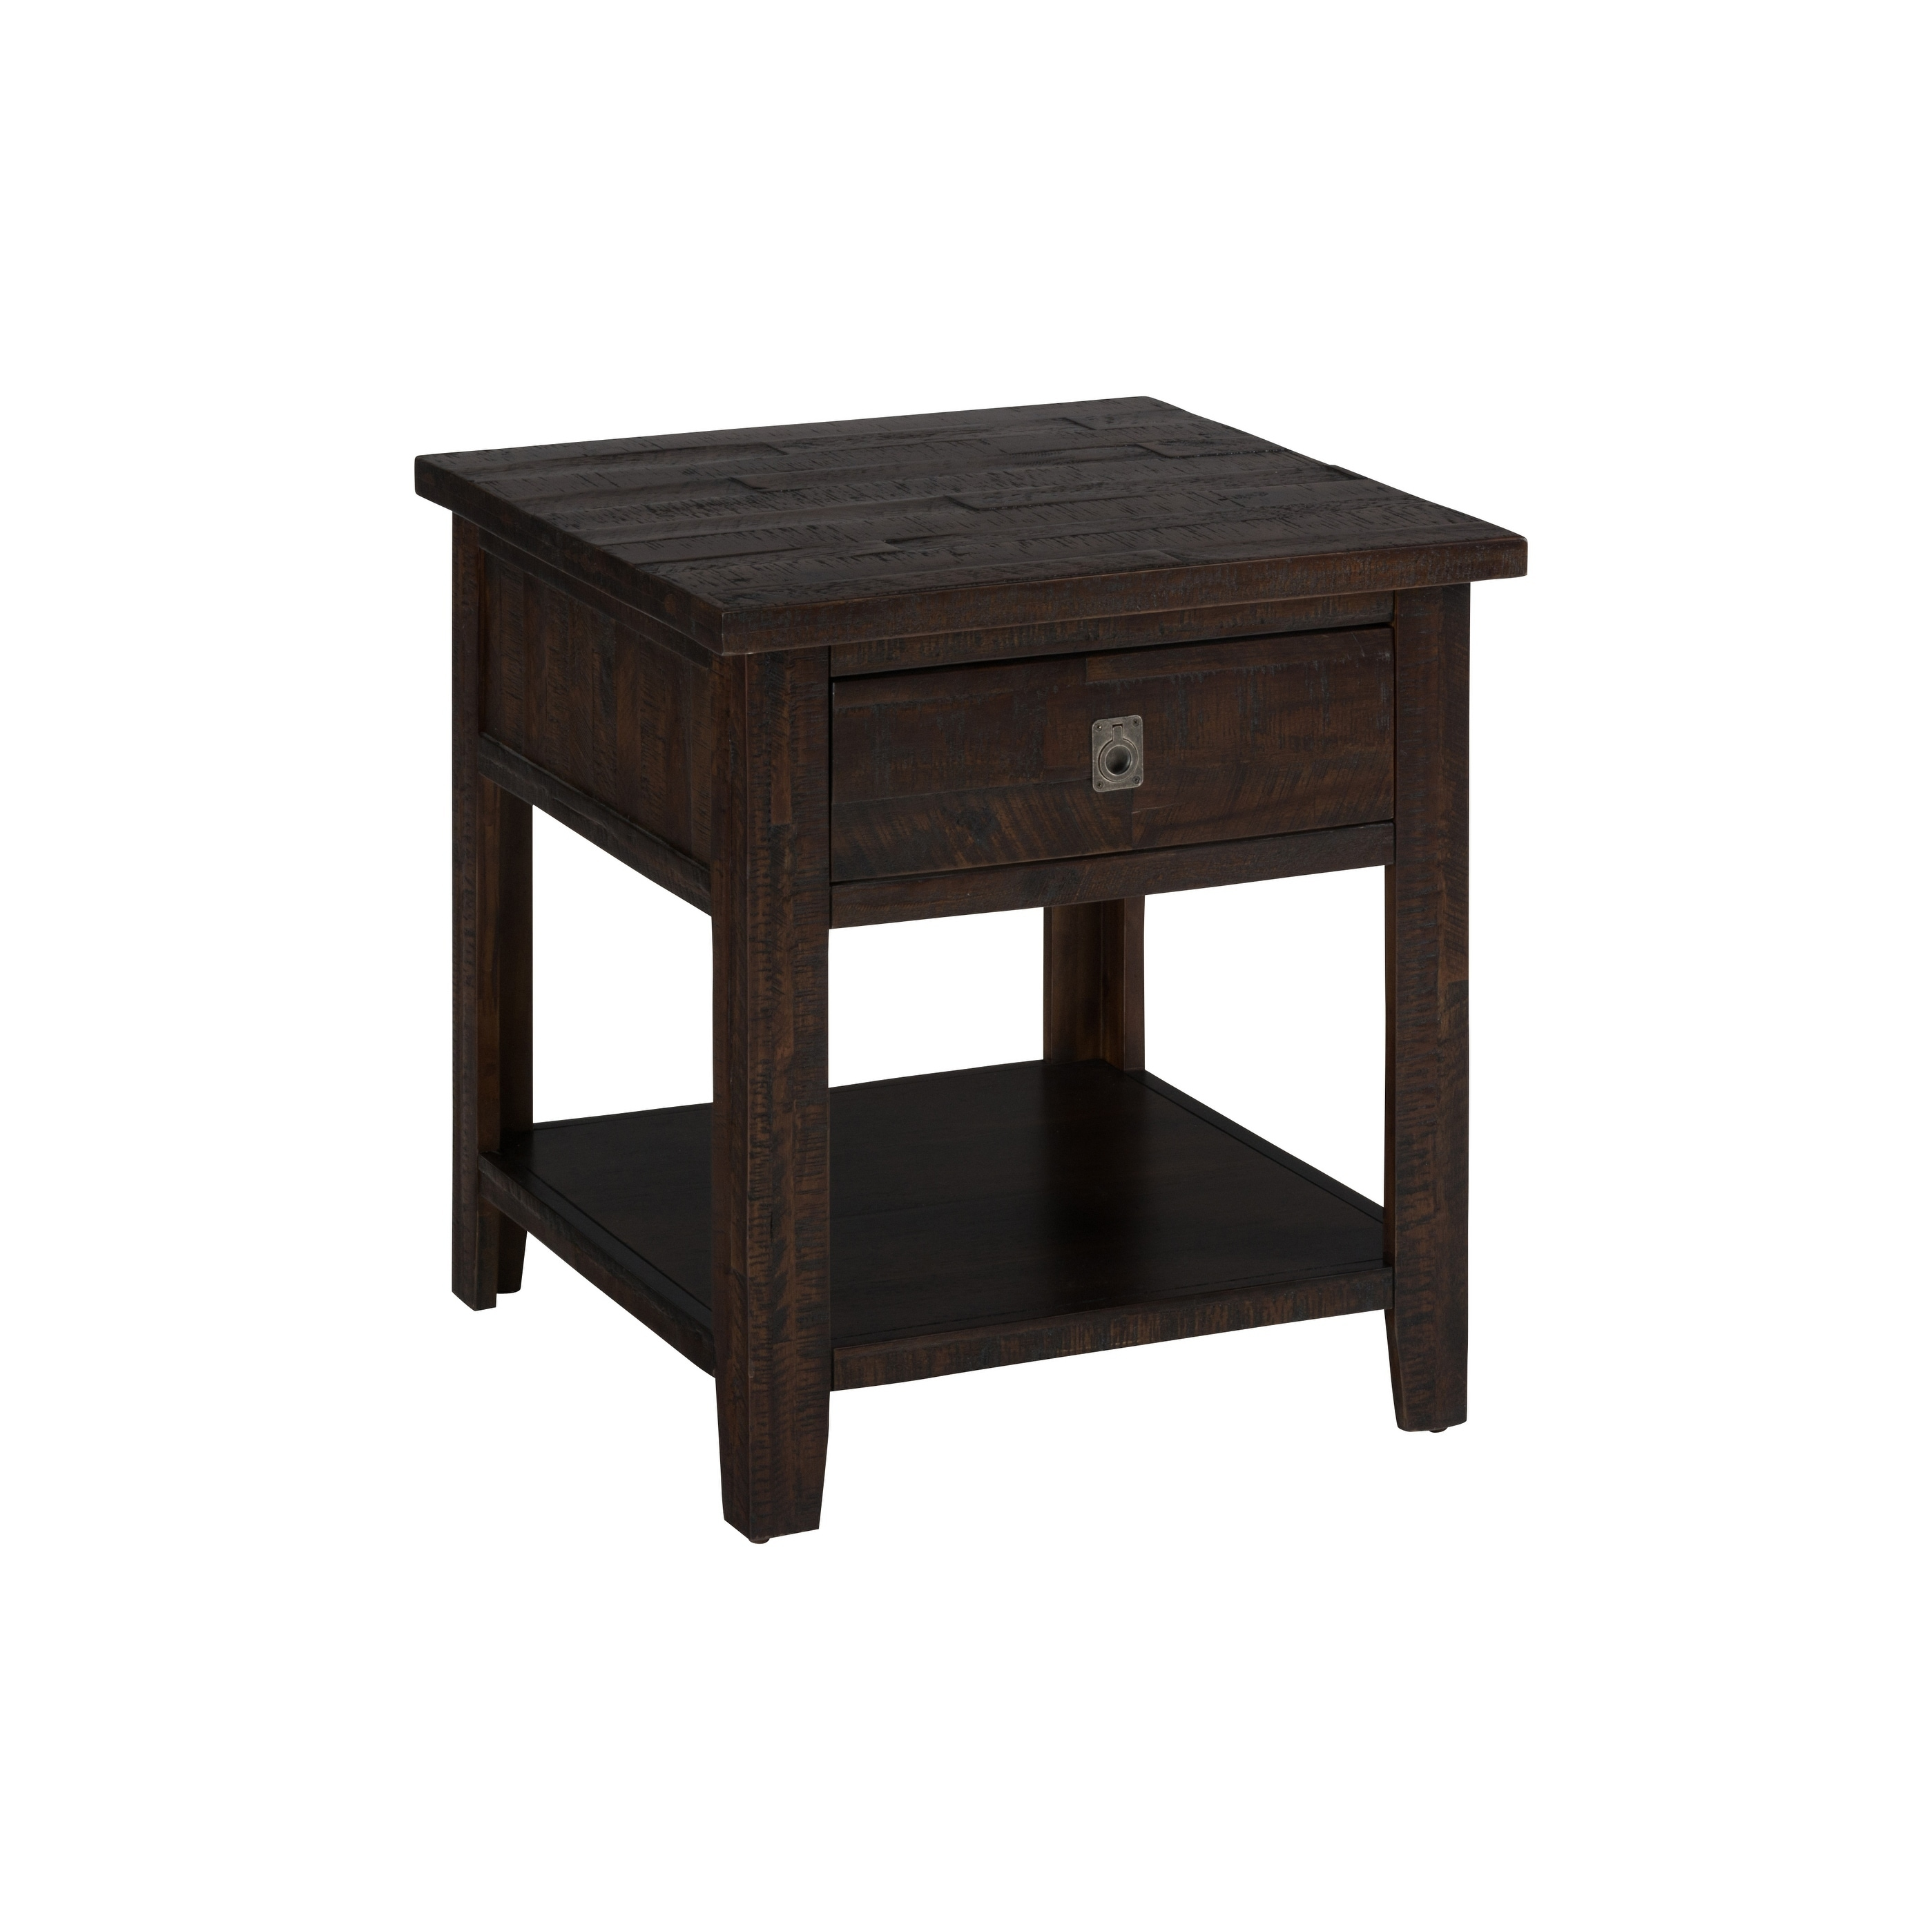 wooden end table with rough hewn saw marks chocolate brown tables free shipping today uttermost stratford console fold out leon kingston crate side diy white glass top outdoor